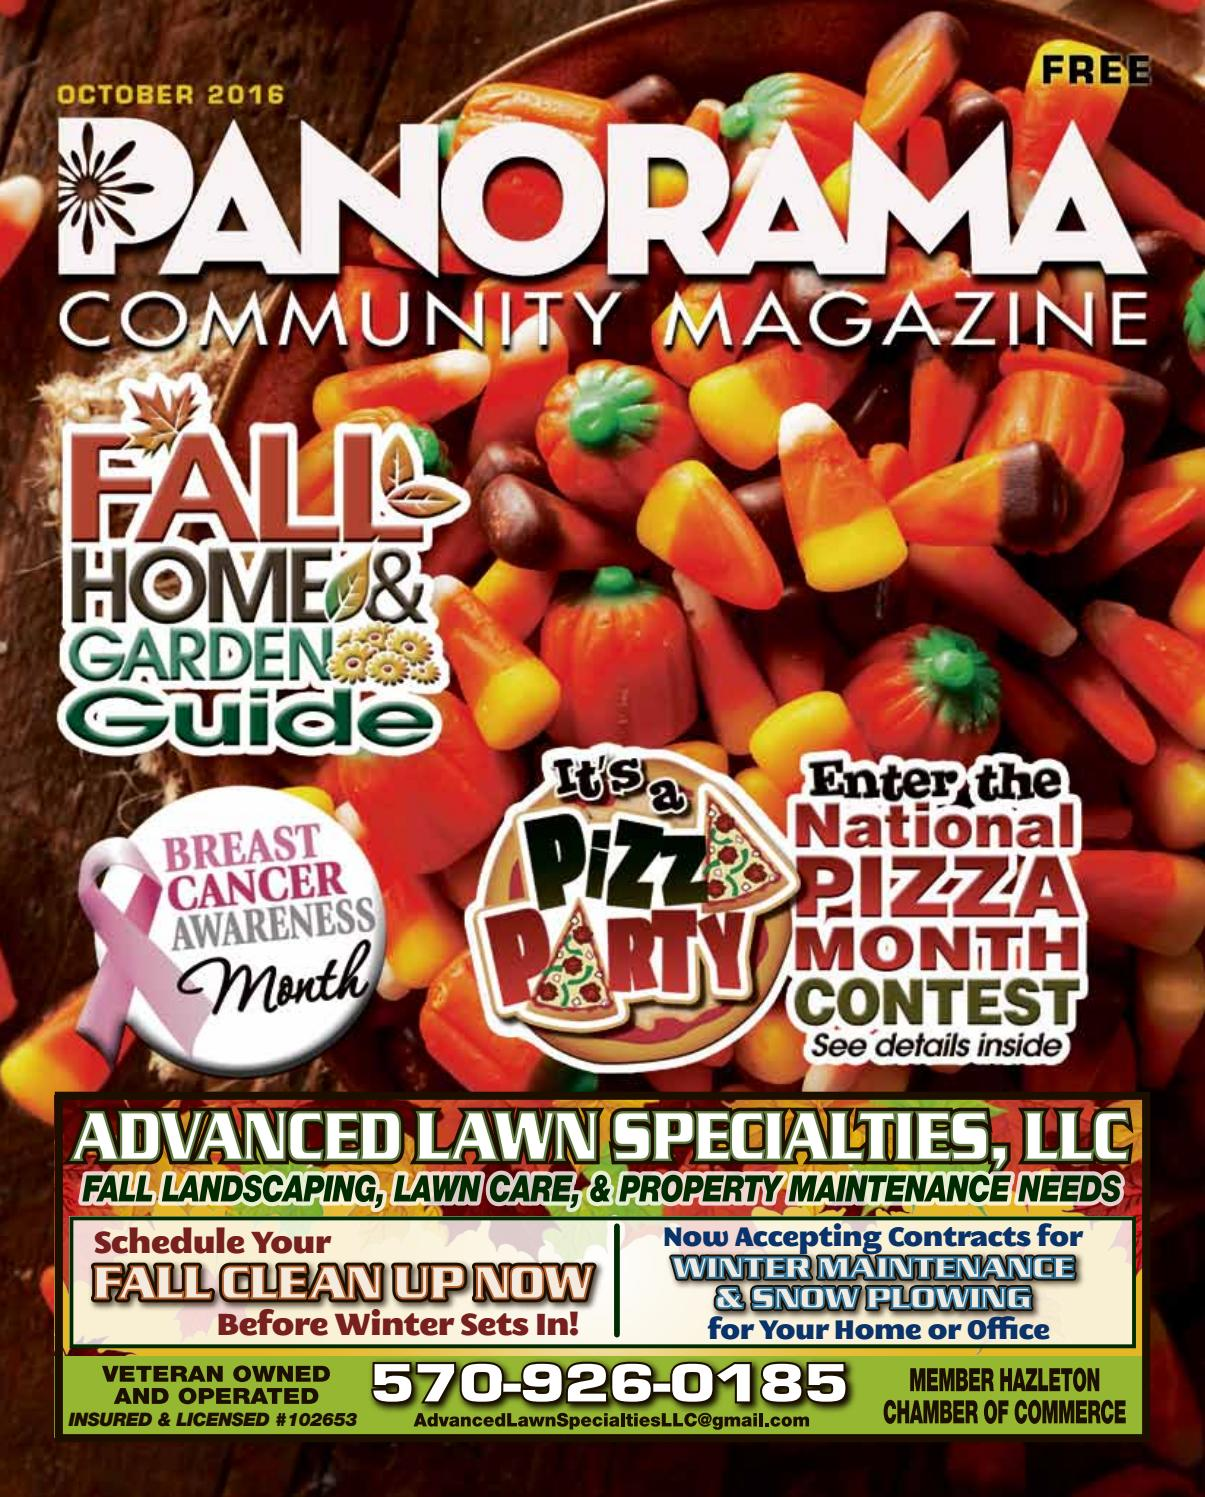 Kitchen gallery design center north broad street west hazleton pa - Panorama Community Magazine October 2016 By Panorama Community Magazine Issuu